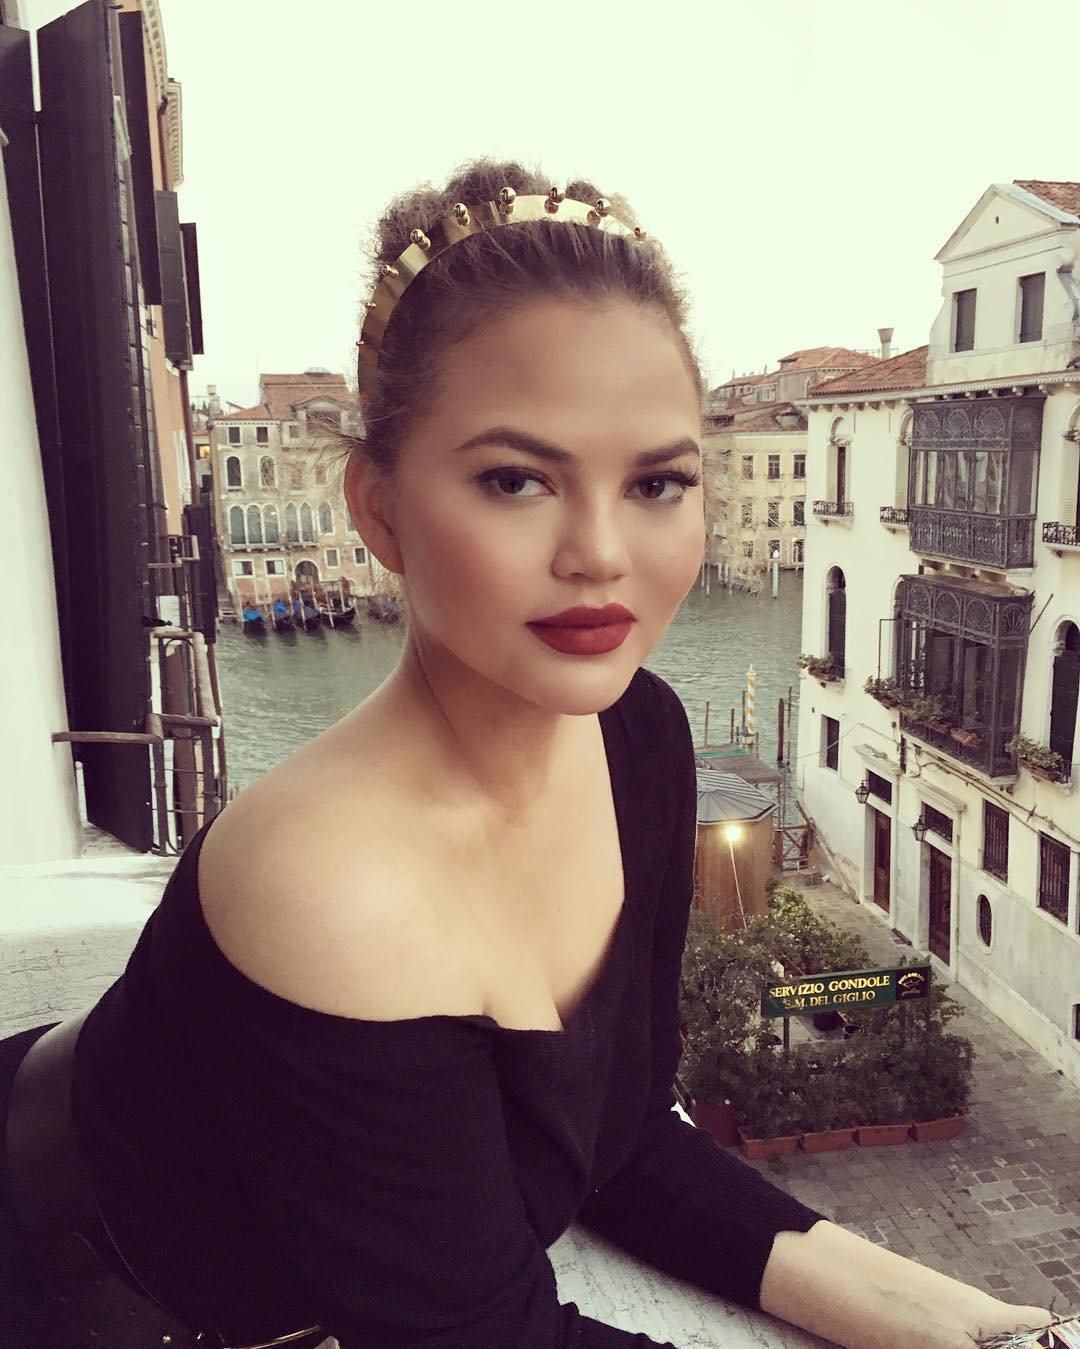 Chrissy Teigen has some thoughts about Meghan Markle's dad